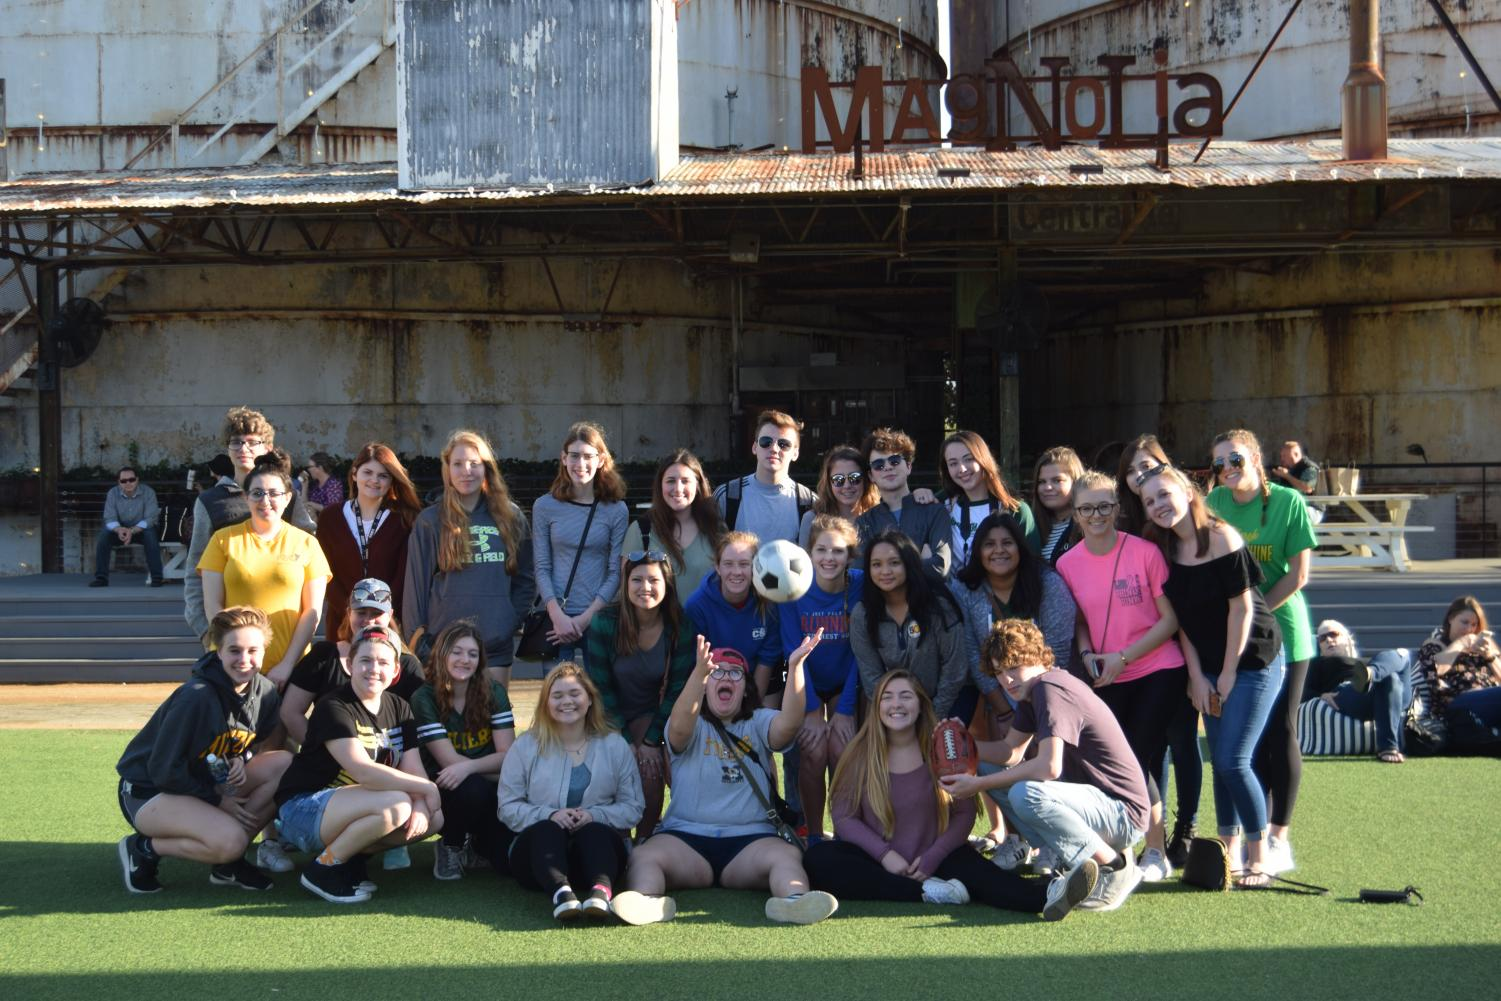 Publications visits Magnolia Silos on their way to Baylor University in Waco, Texas.